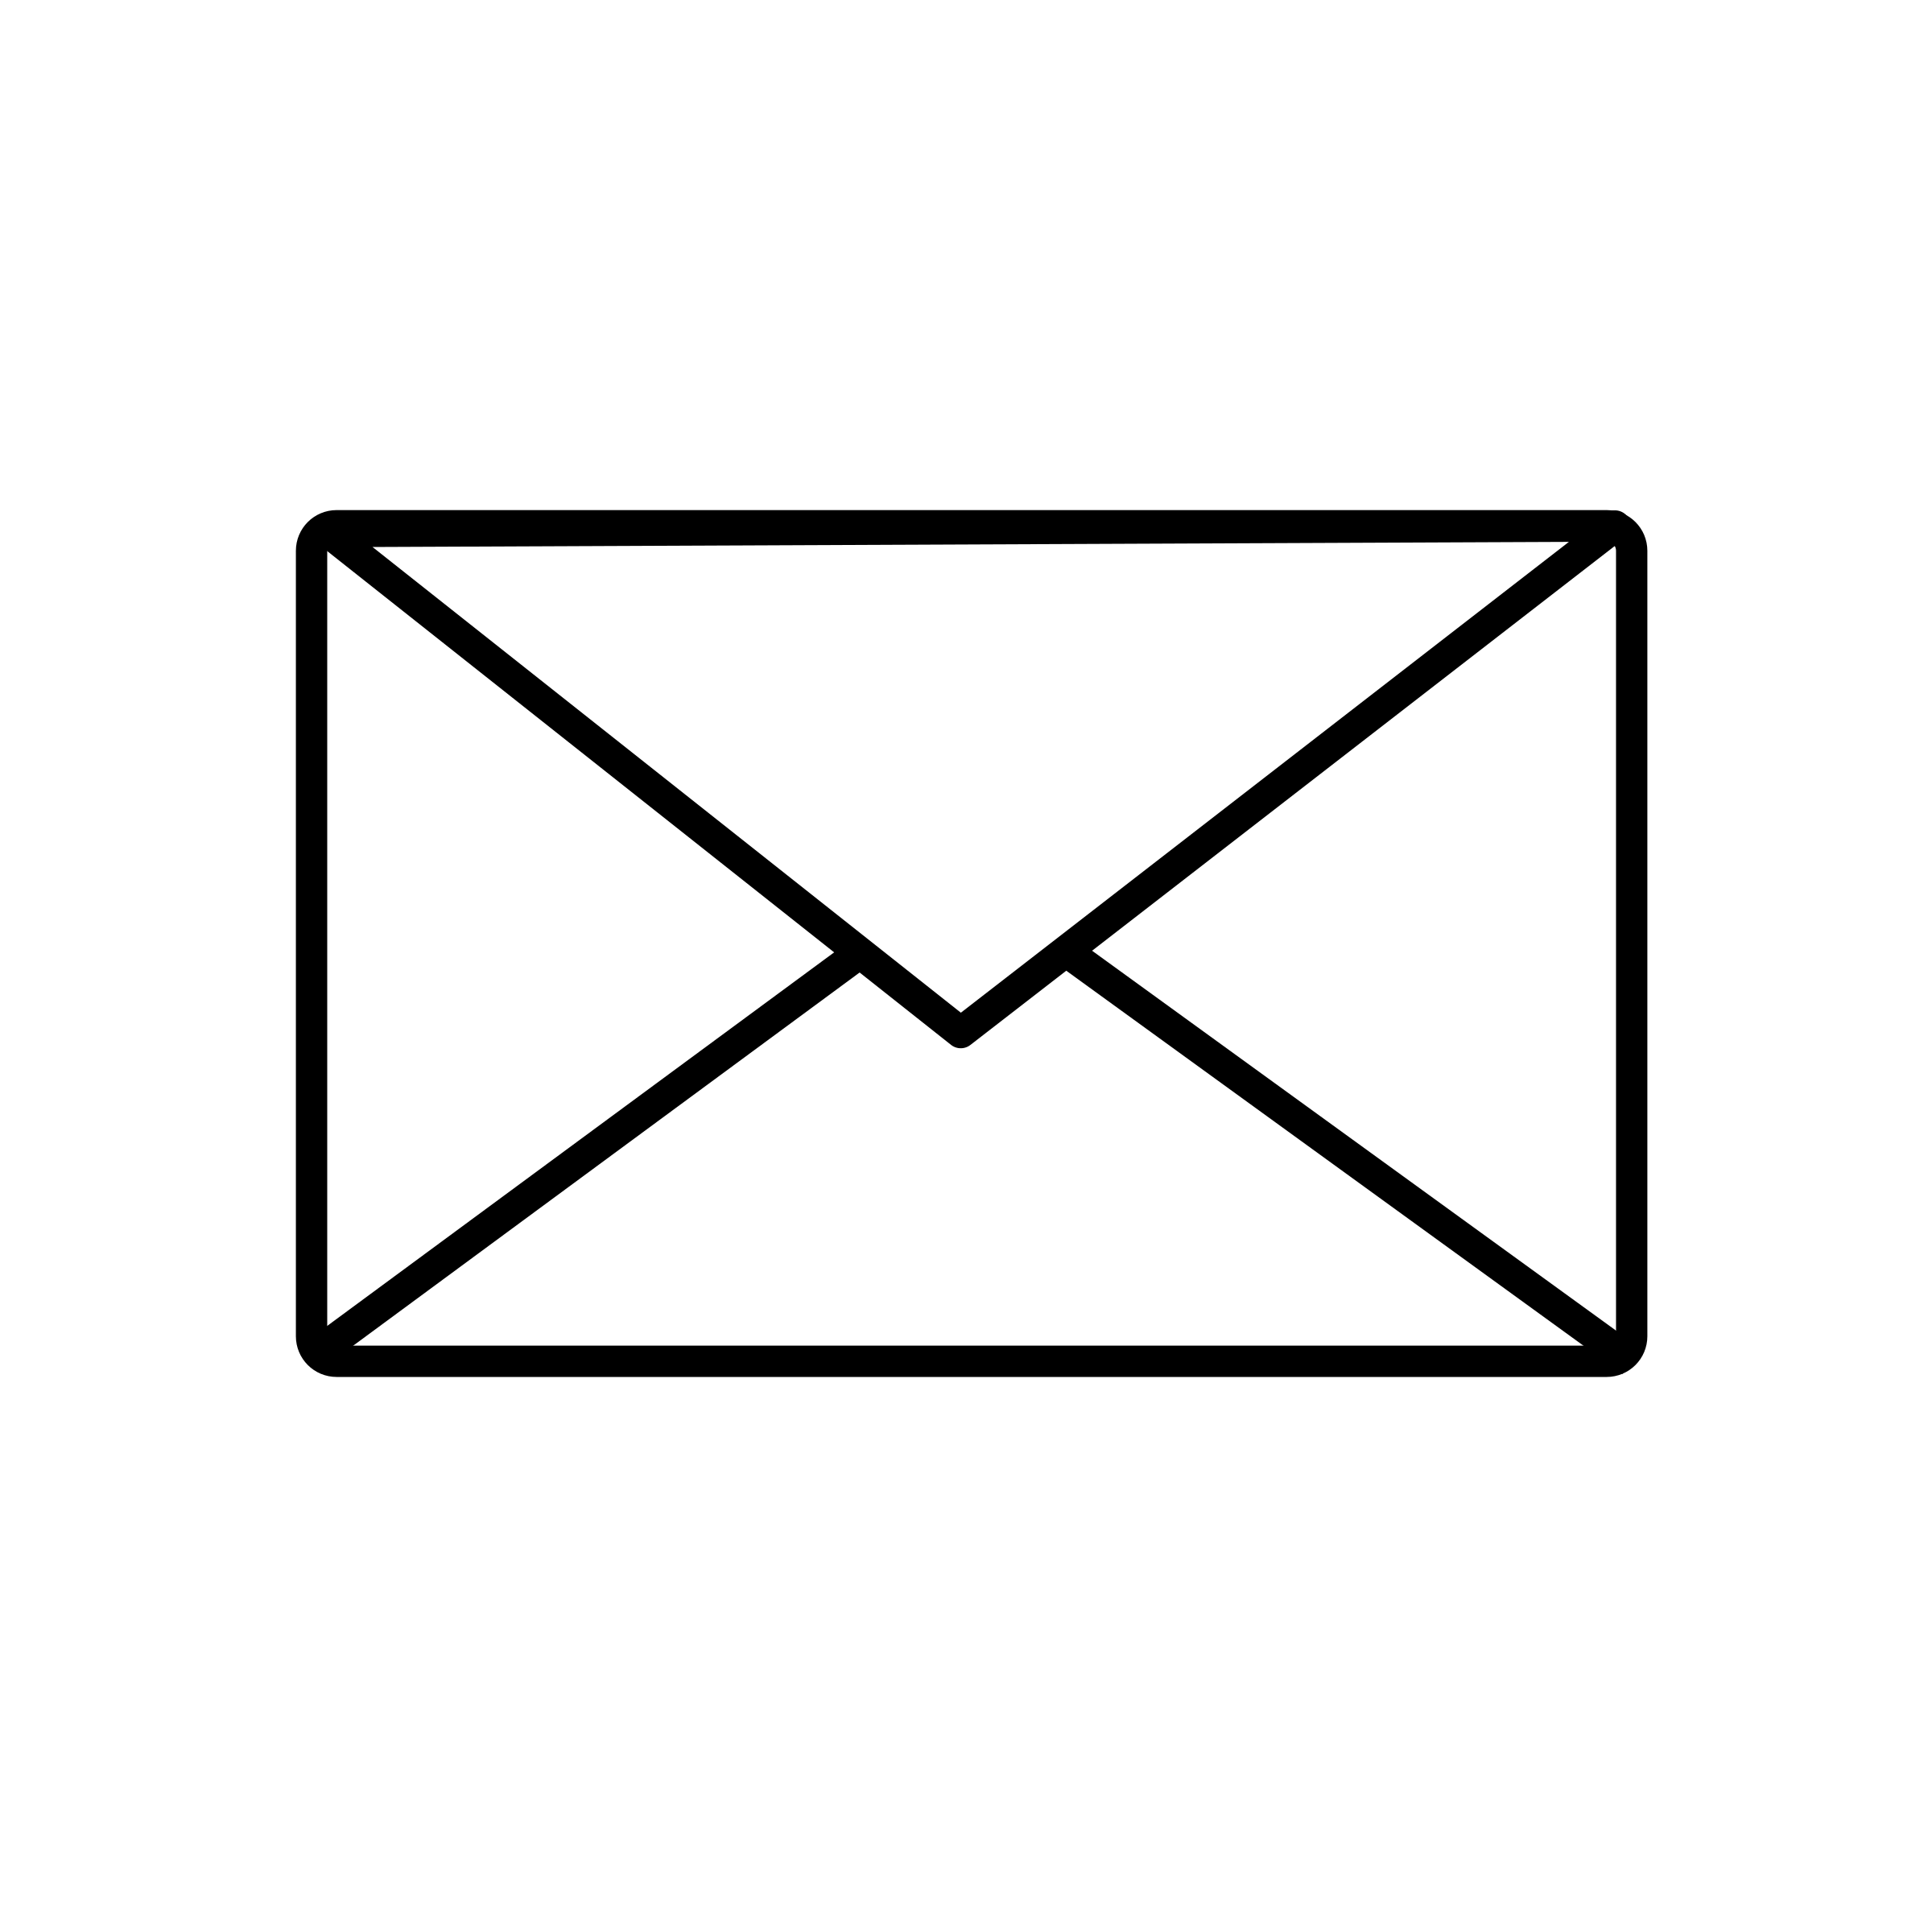 Email clipart icon white